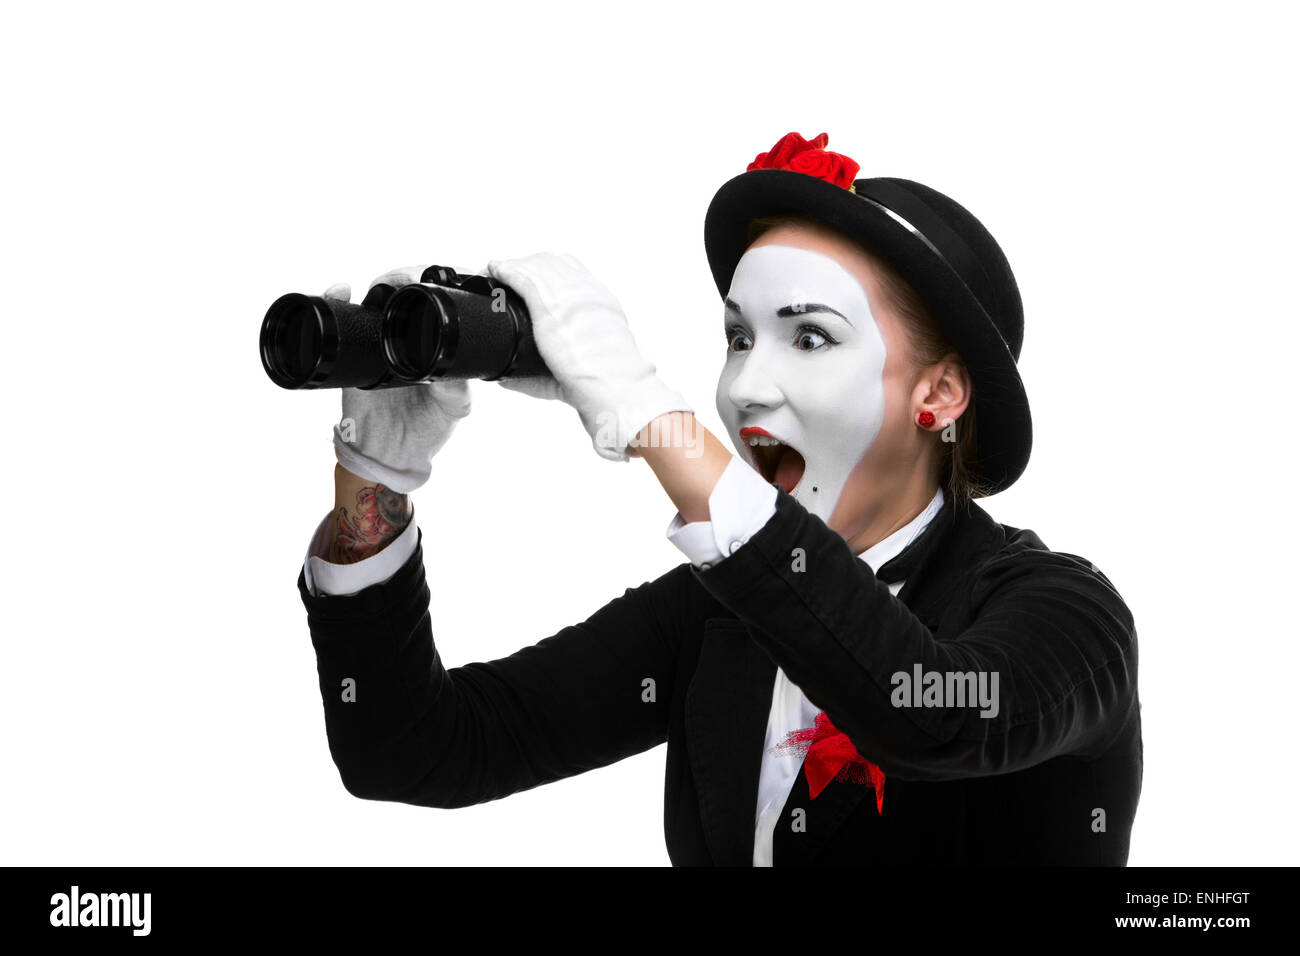 Portrait of the surprised and joyful mime with binoculars - Stock Image